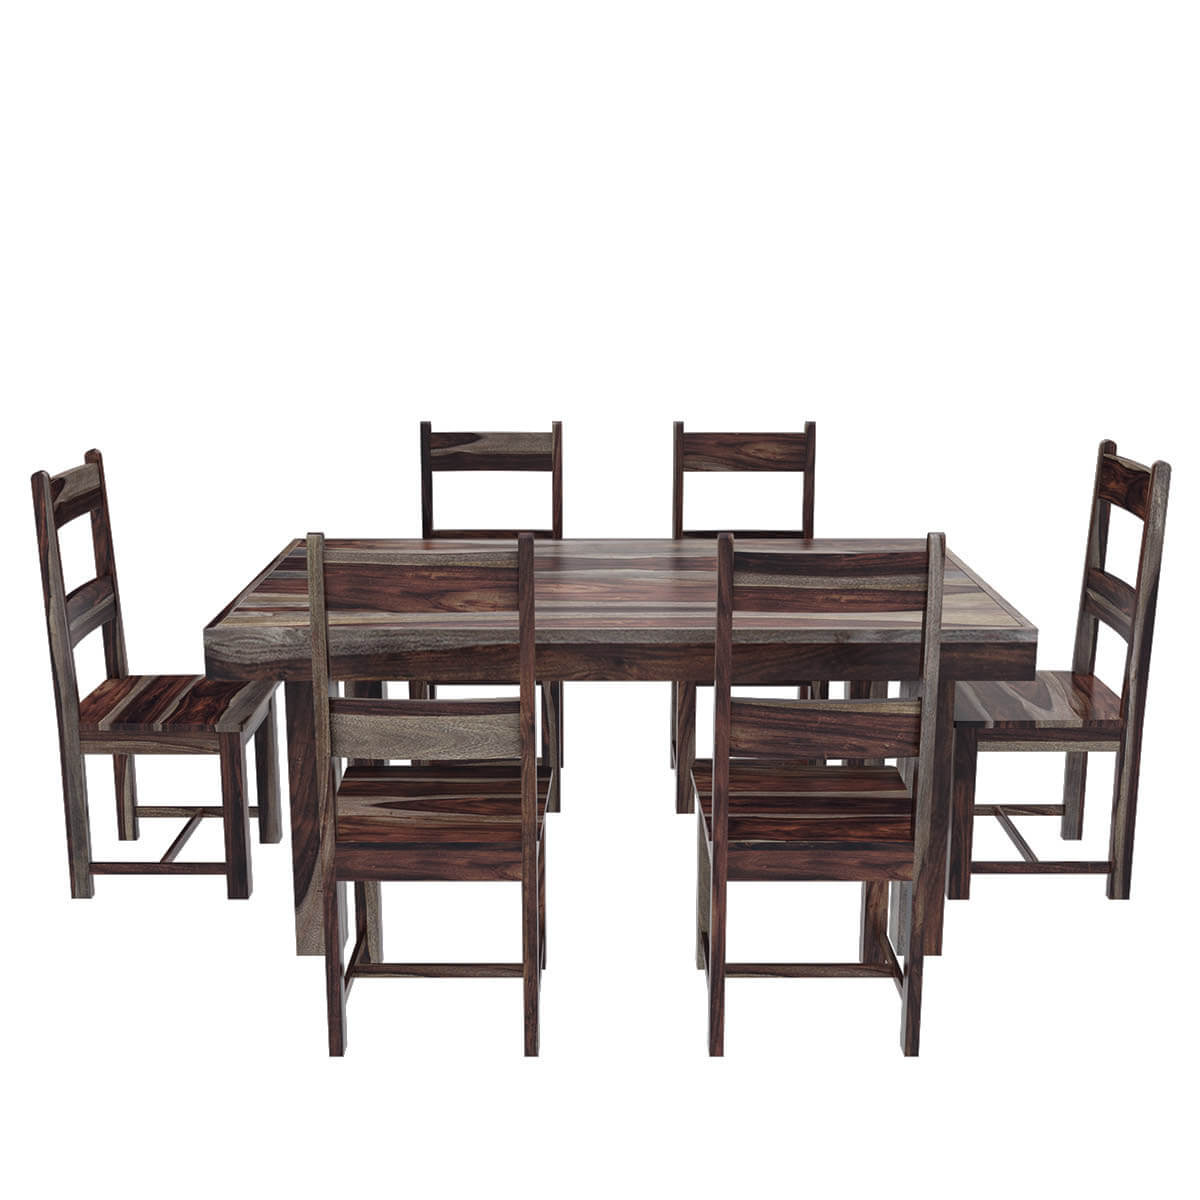 Rustic Chairs For Dining Room: Frisco Modern Solid Wood Casual Rustic Dining Room Table